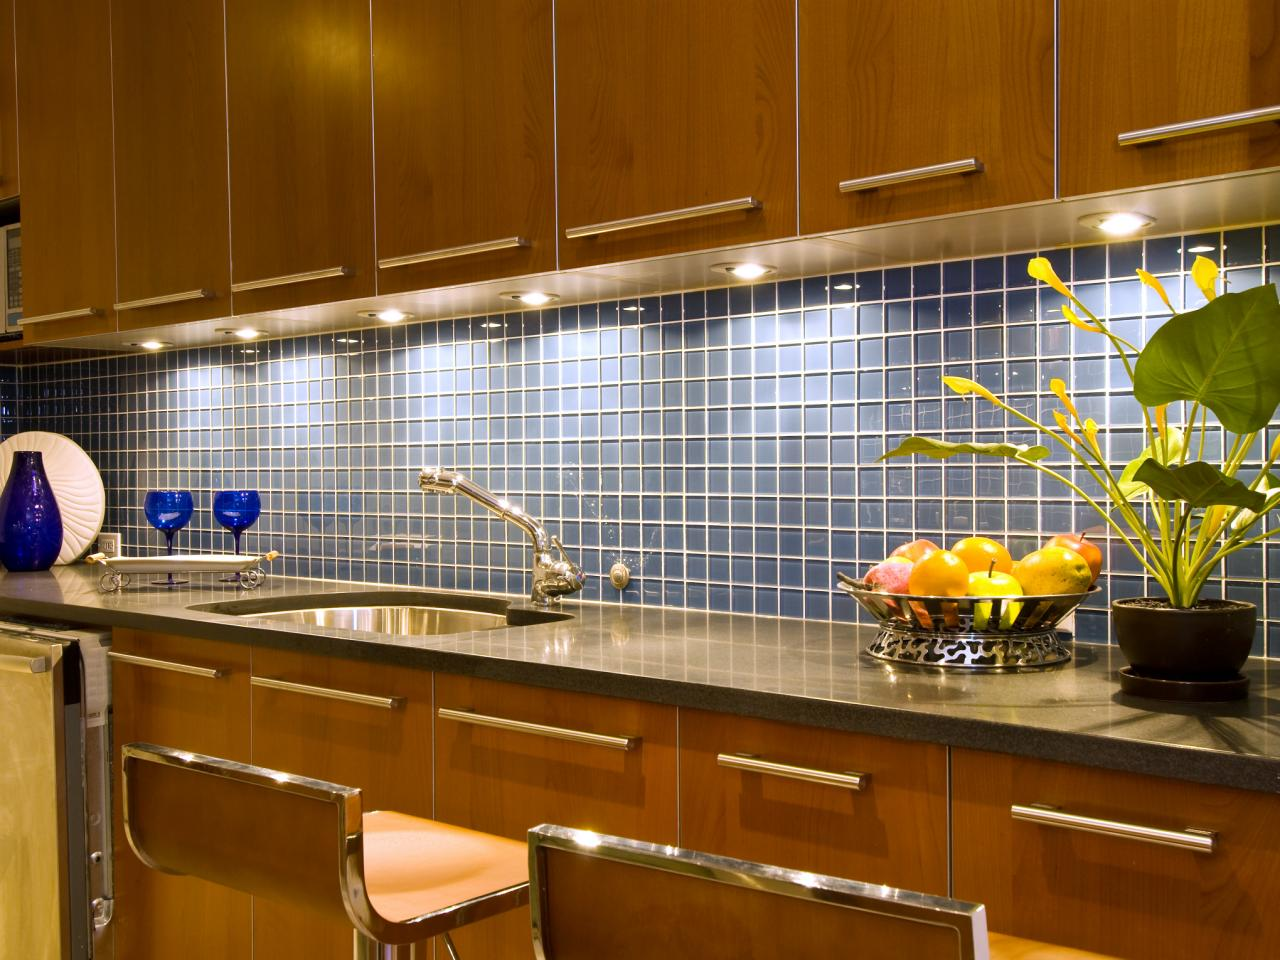 Grey Kitchen Tile Ideas Illuminated with Bright Lights inside Stylish Kitchen using Teak Counter